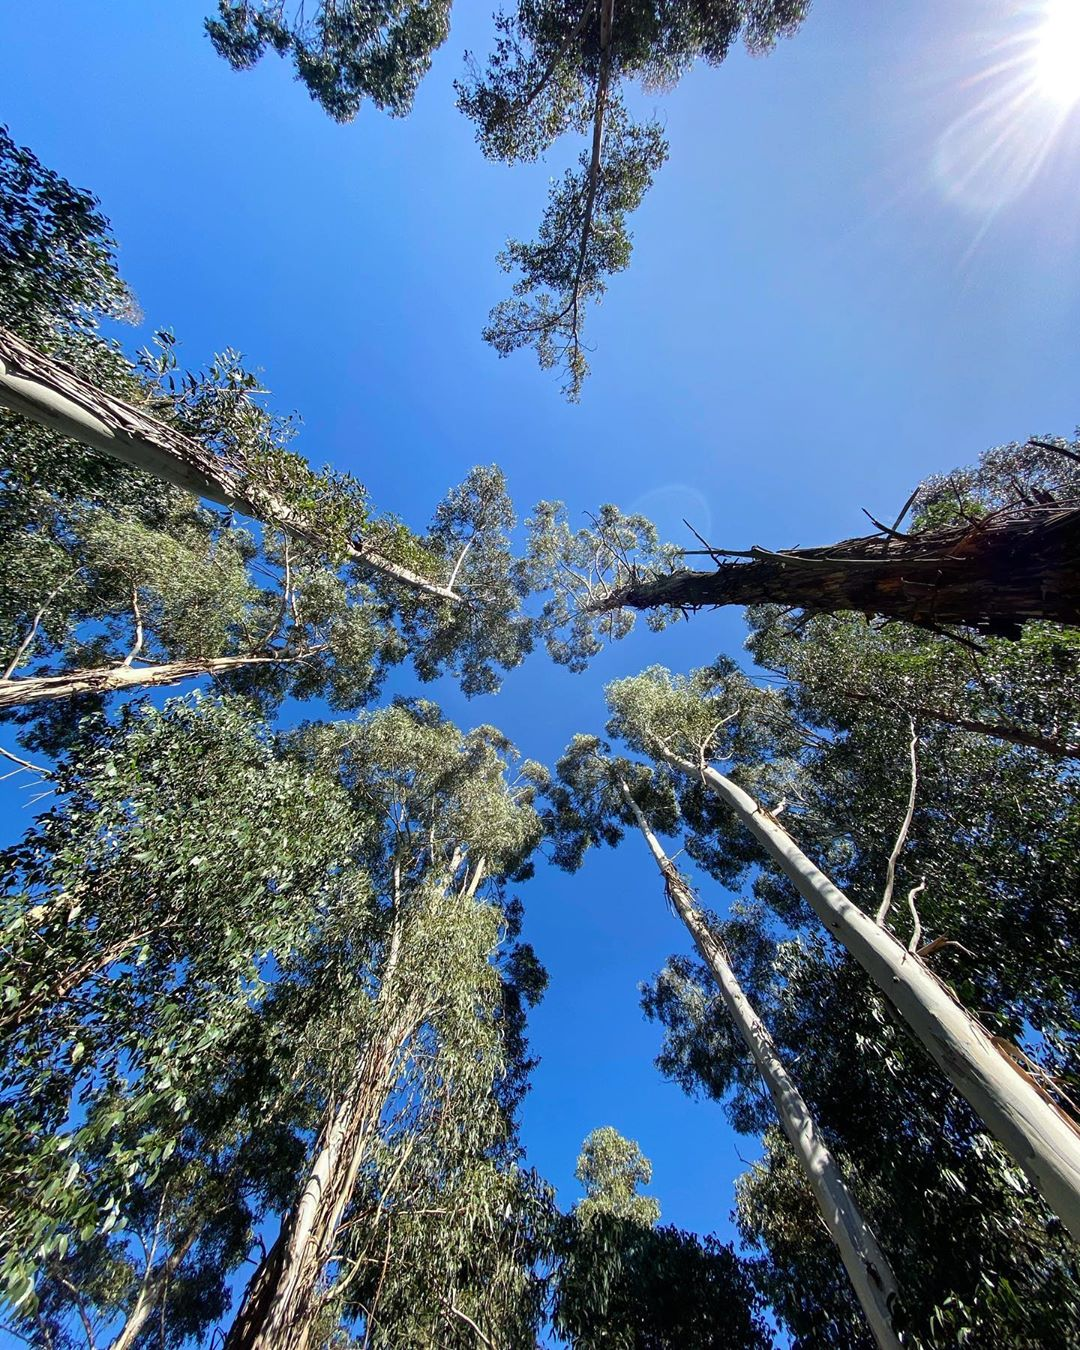 Looking up at the canopies of trees from the ground with clear blue sky and the sun shining in the corner